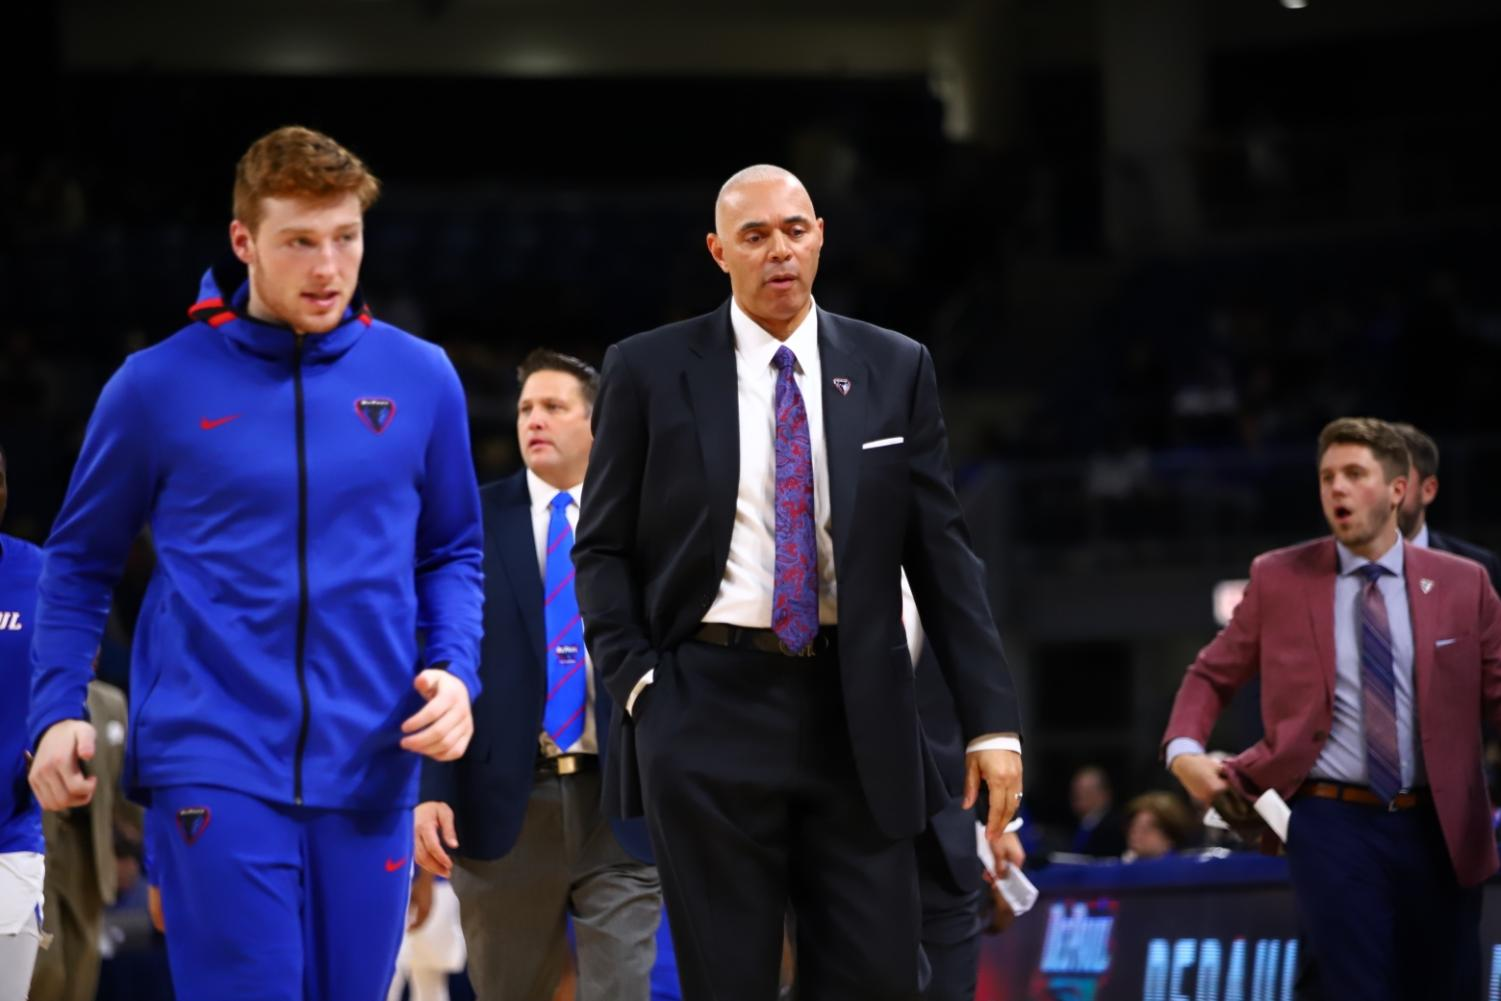 DePaul head coach Dave Leitao walks off the floor after the first half against Buffalo at Wintrust Arena. The Blue Demons lost the game 74-69.